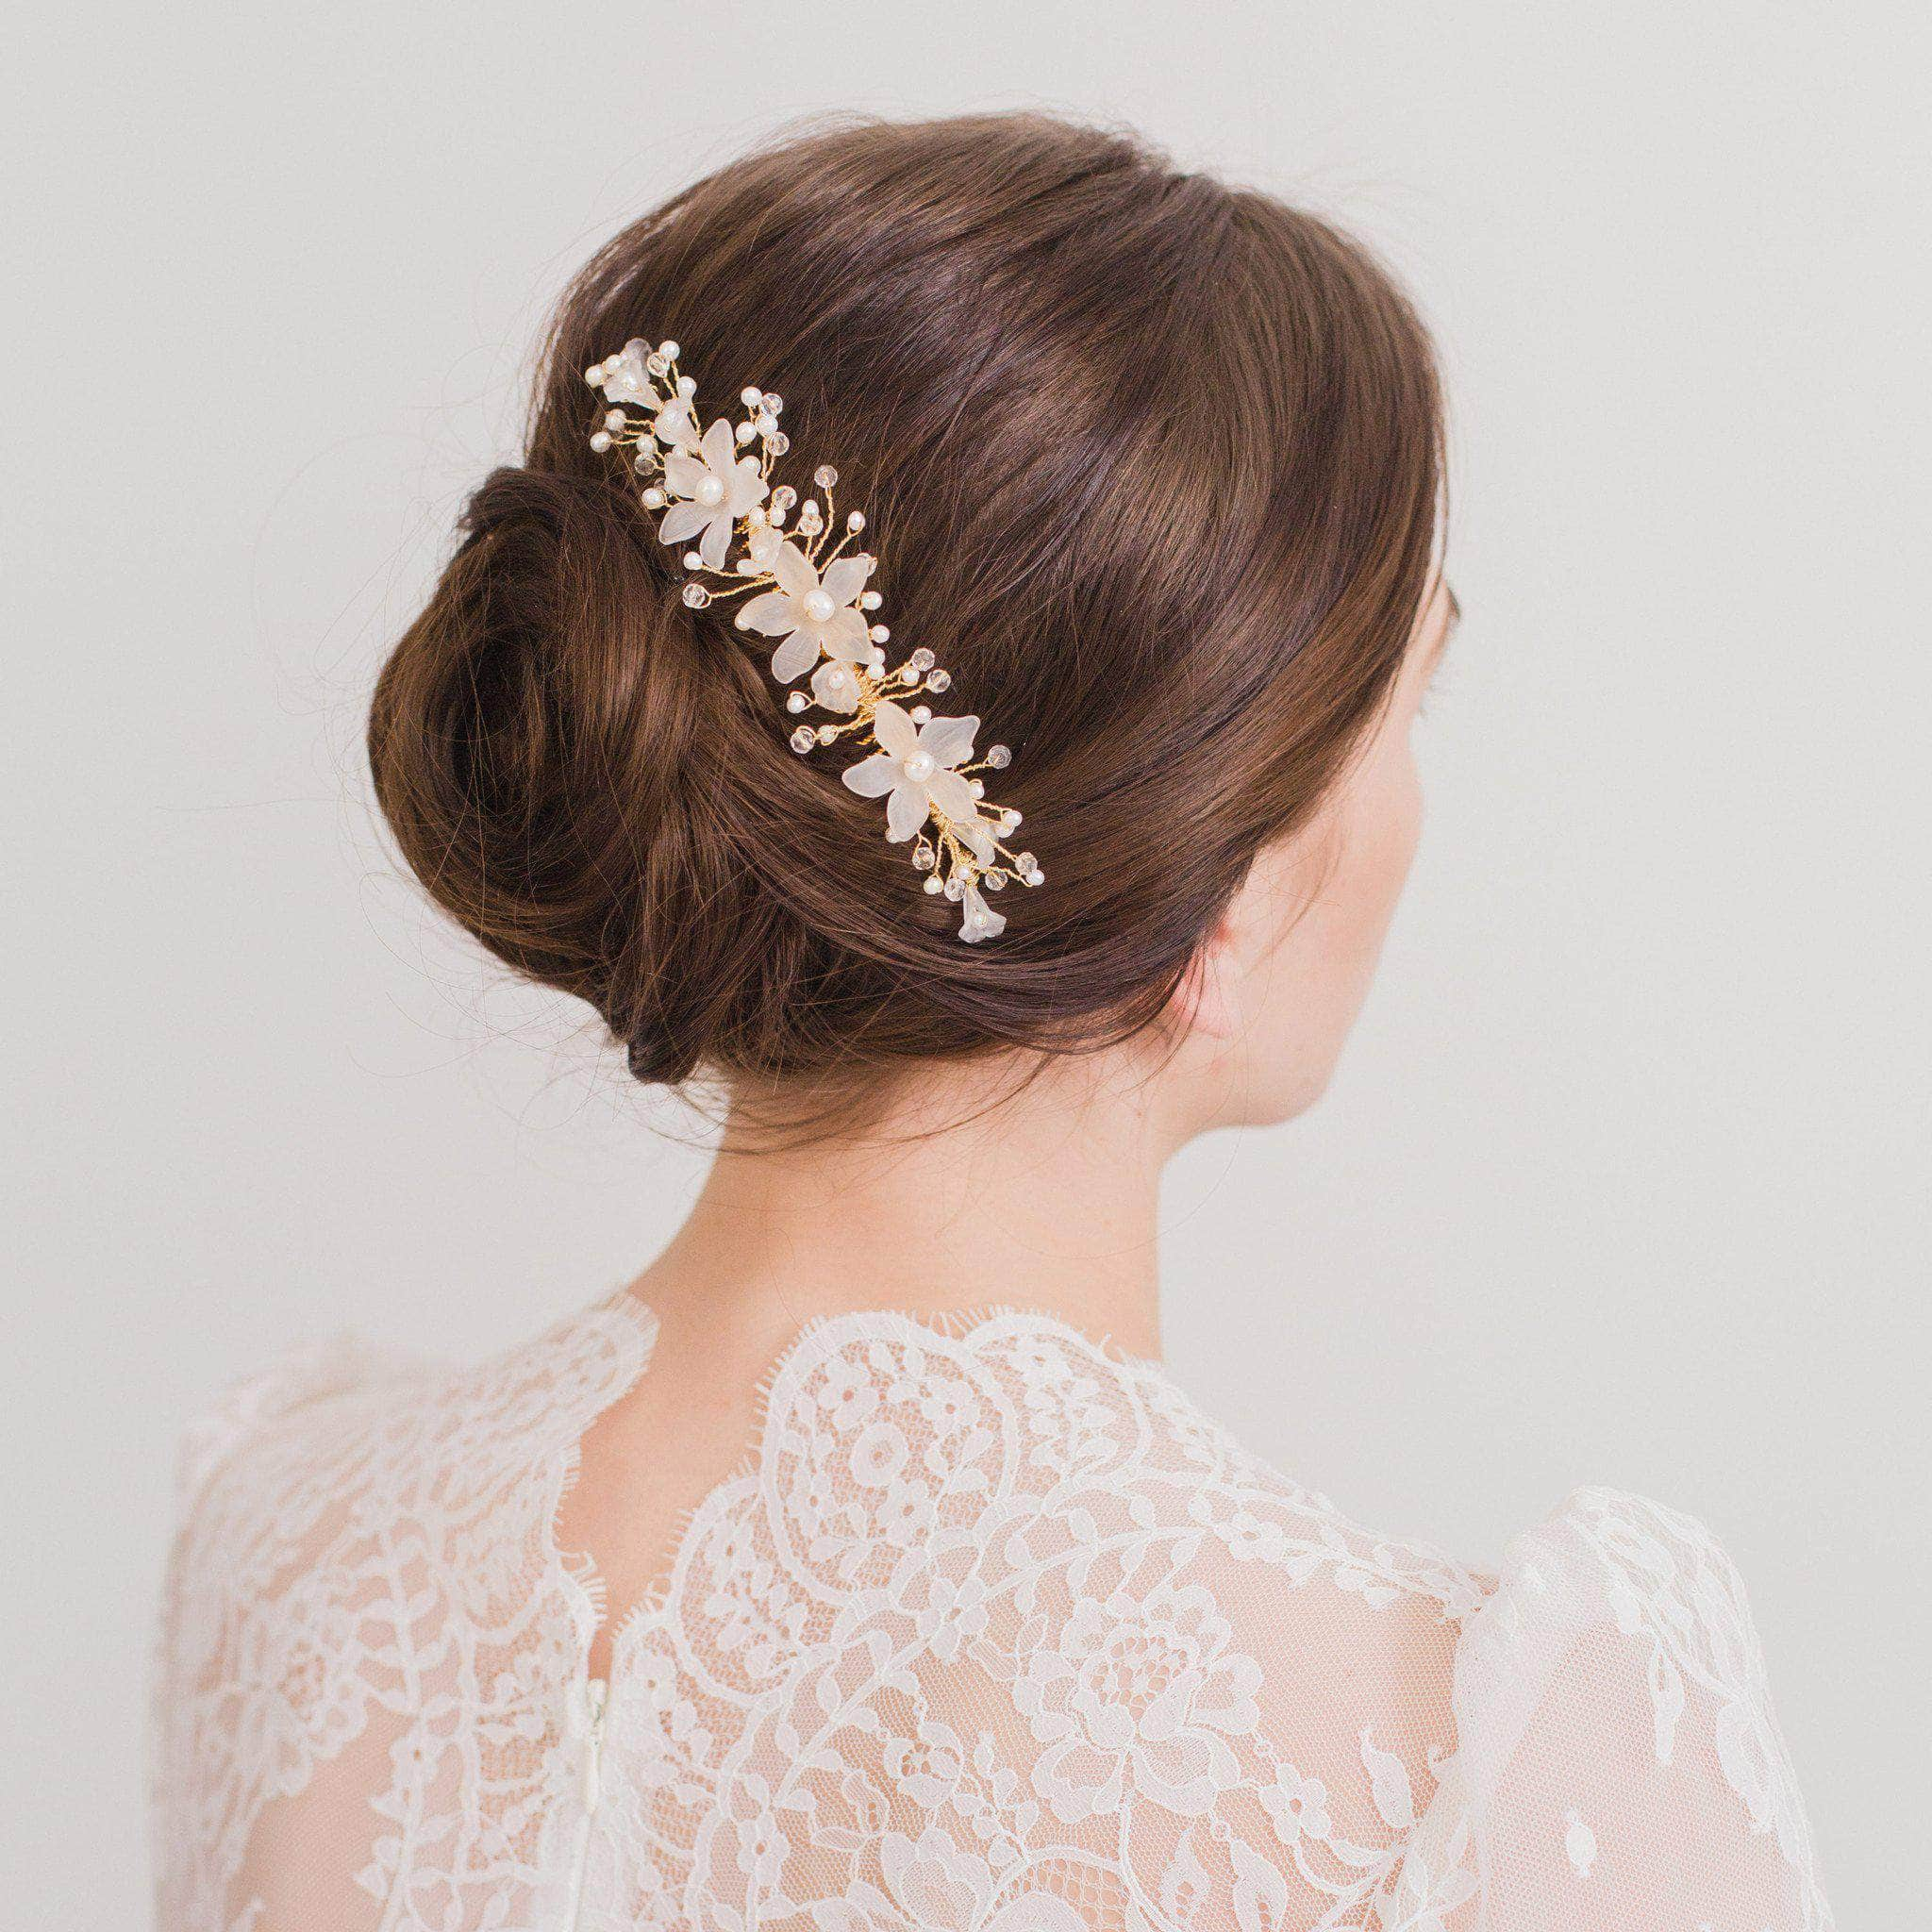 Floral Wedding Hair Comb By Britten: Gold Wedding Hair Vine Comb With Freshwater Pearls